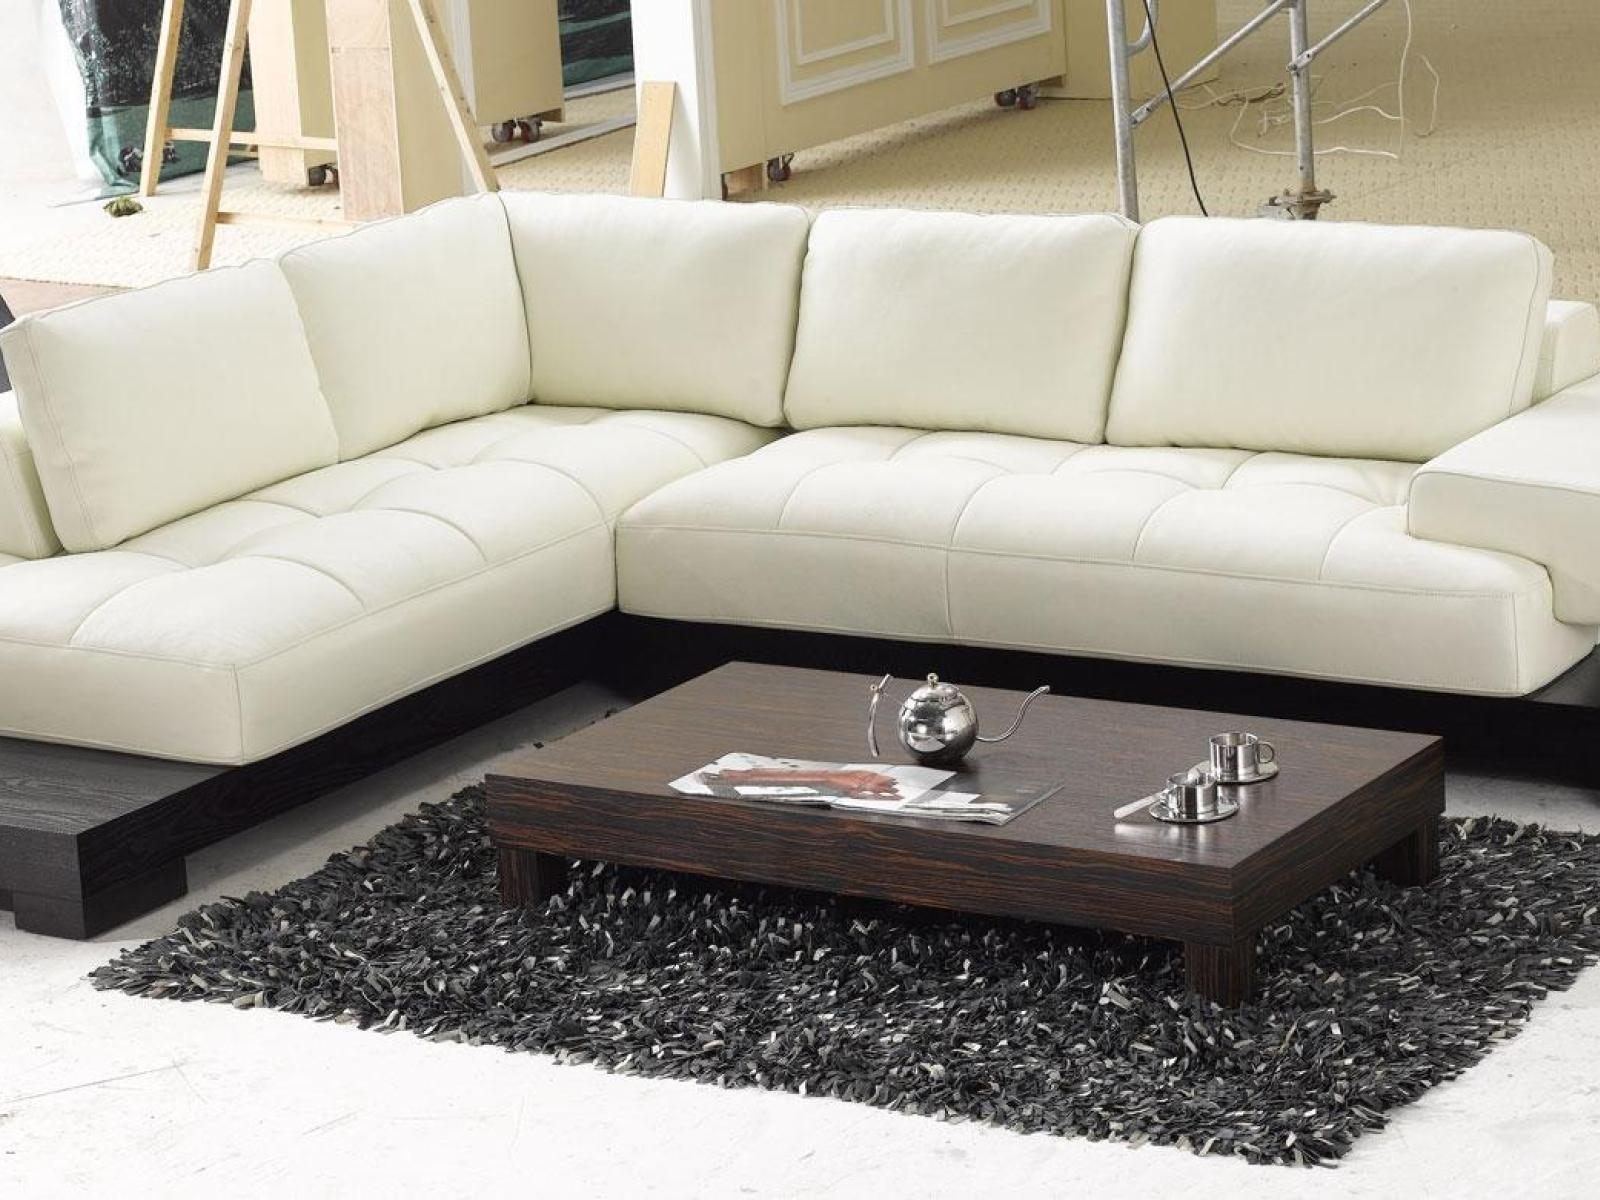 ▻ Sofa : 11 Lovely Contemporary Leather Couch Beige Leather With Regard To Beige Leather Couches (Image 1 of 20)